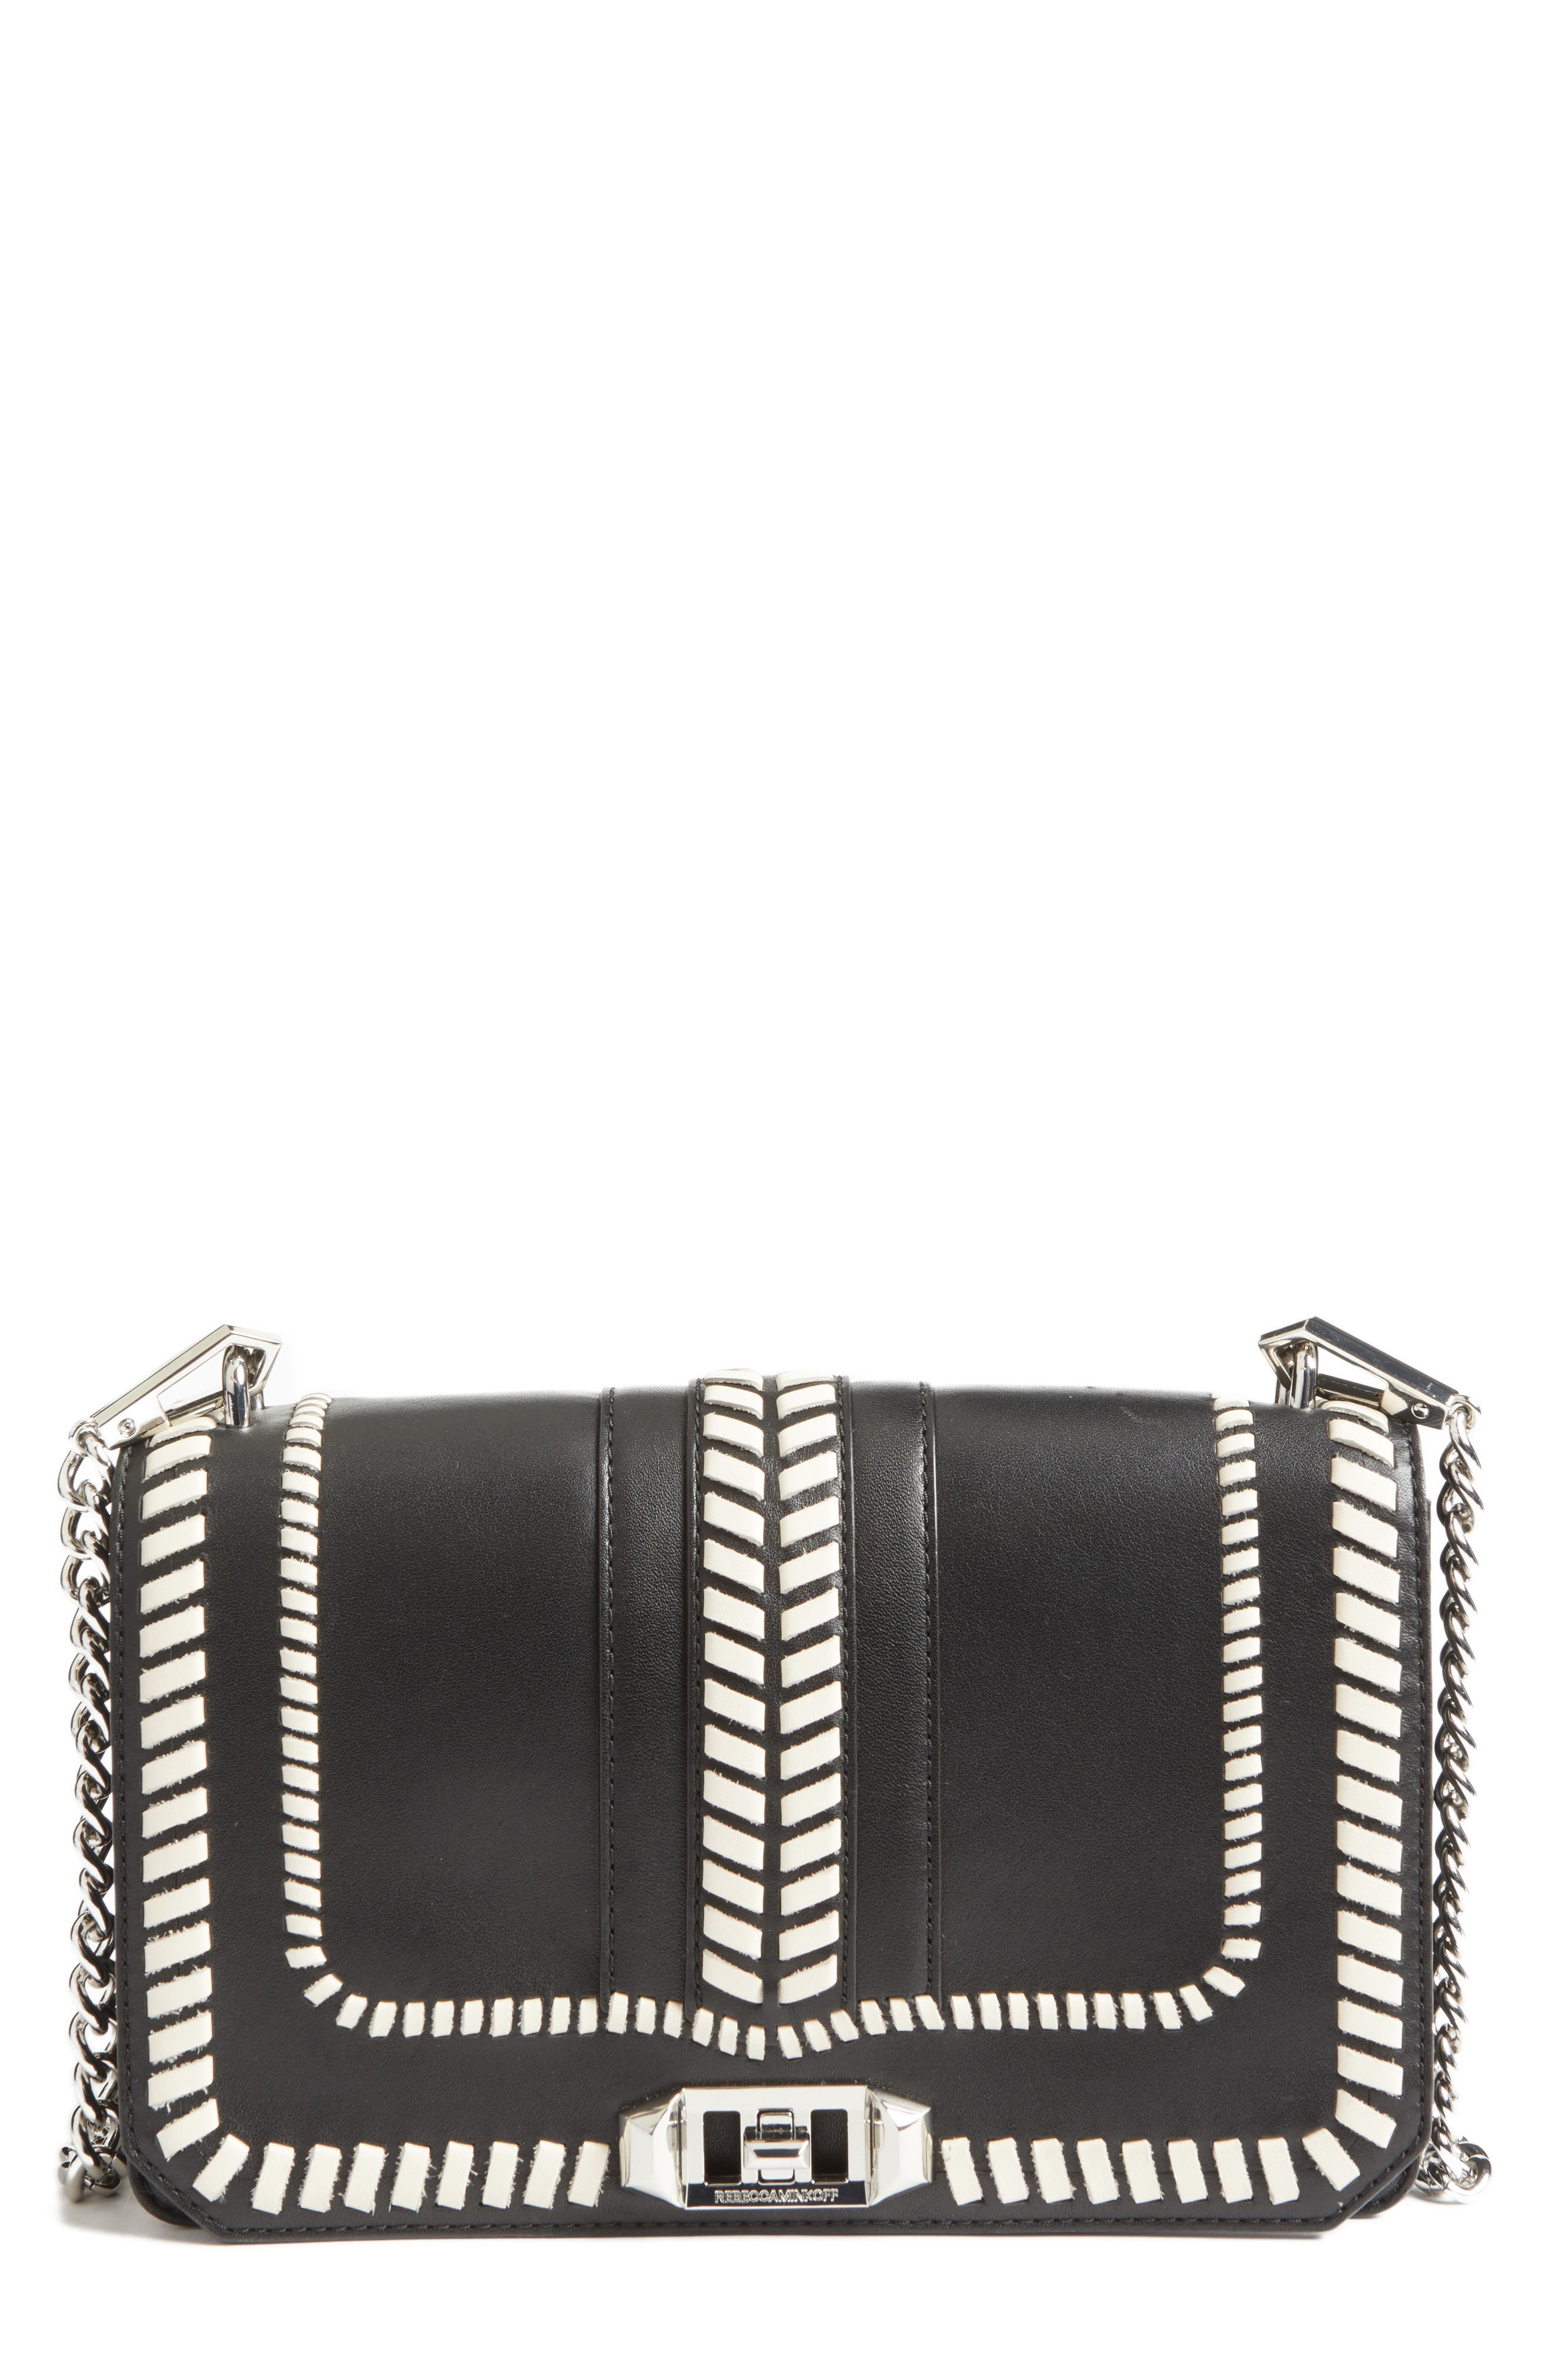 Alternate Image 1 Selected - Rebecca Minkoff Love Leather Convertible Crossbody Bag